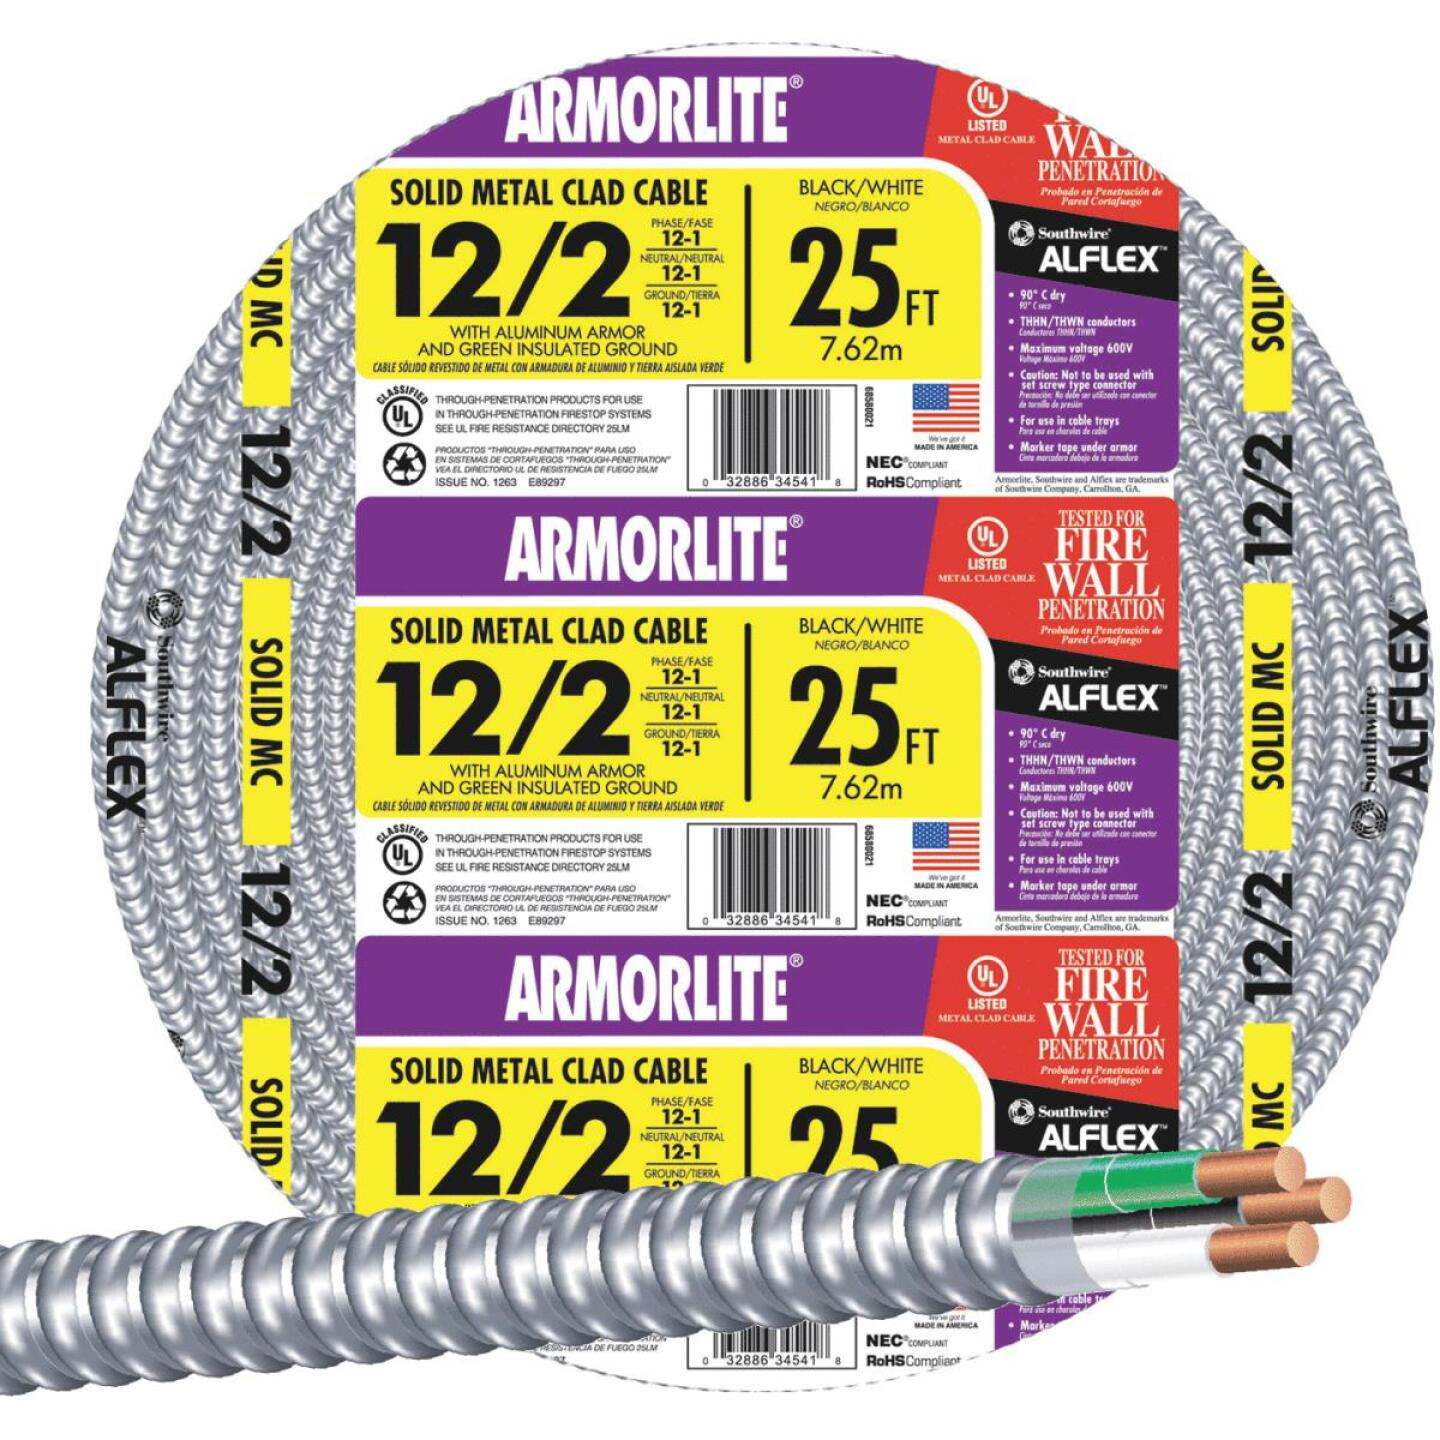 Southwire 25 Ft. 12/2 MC Armored Cable Image 1